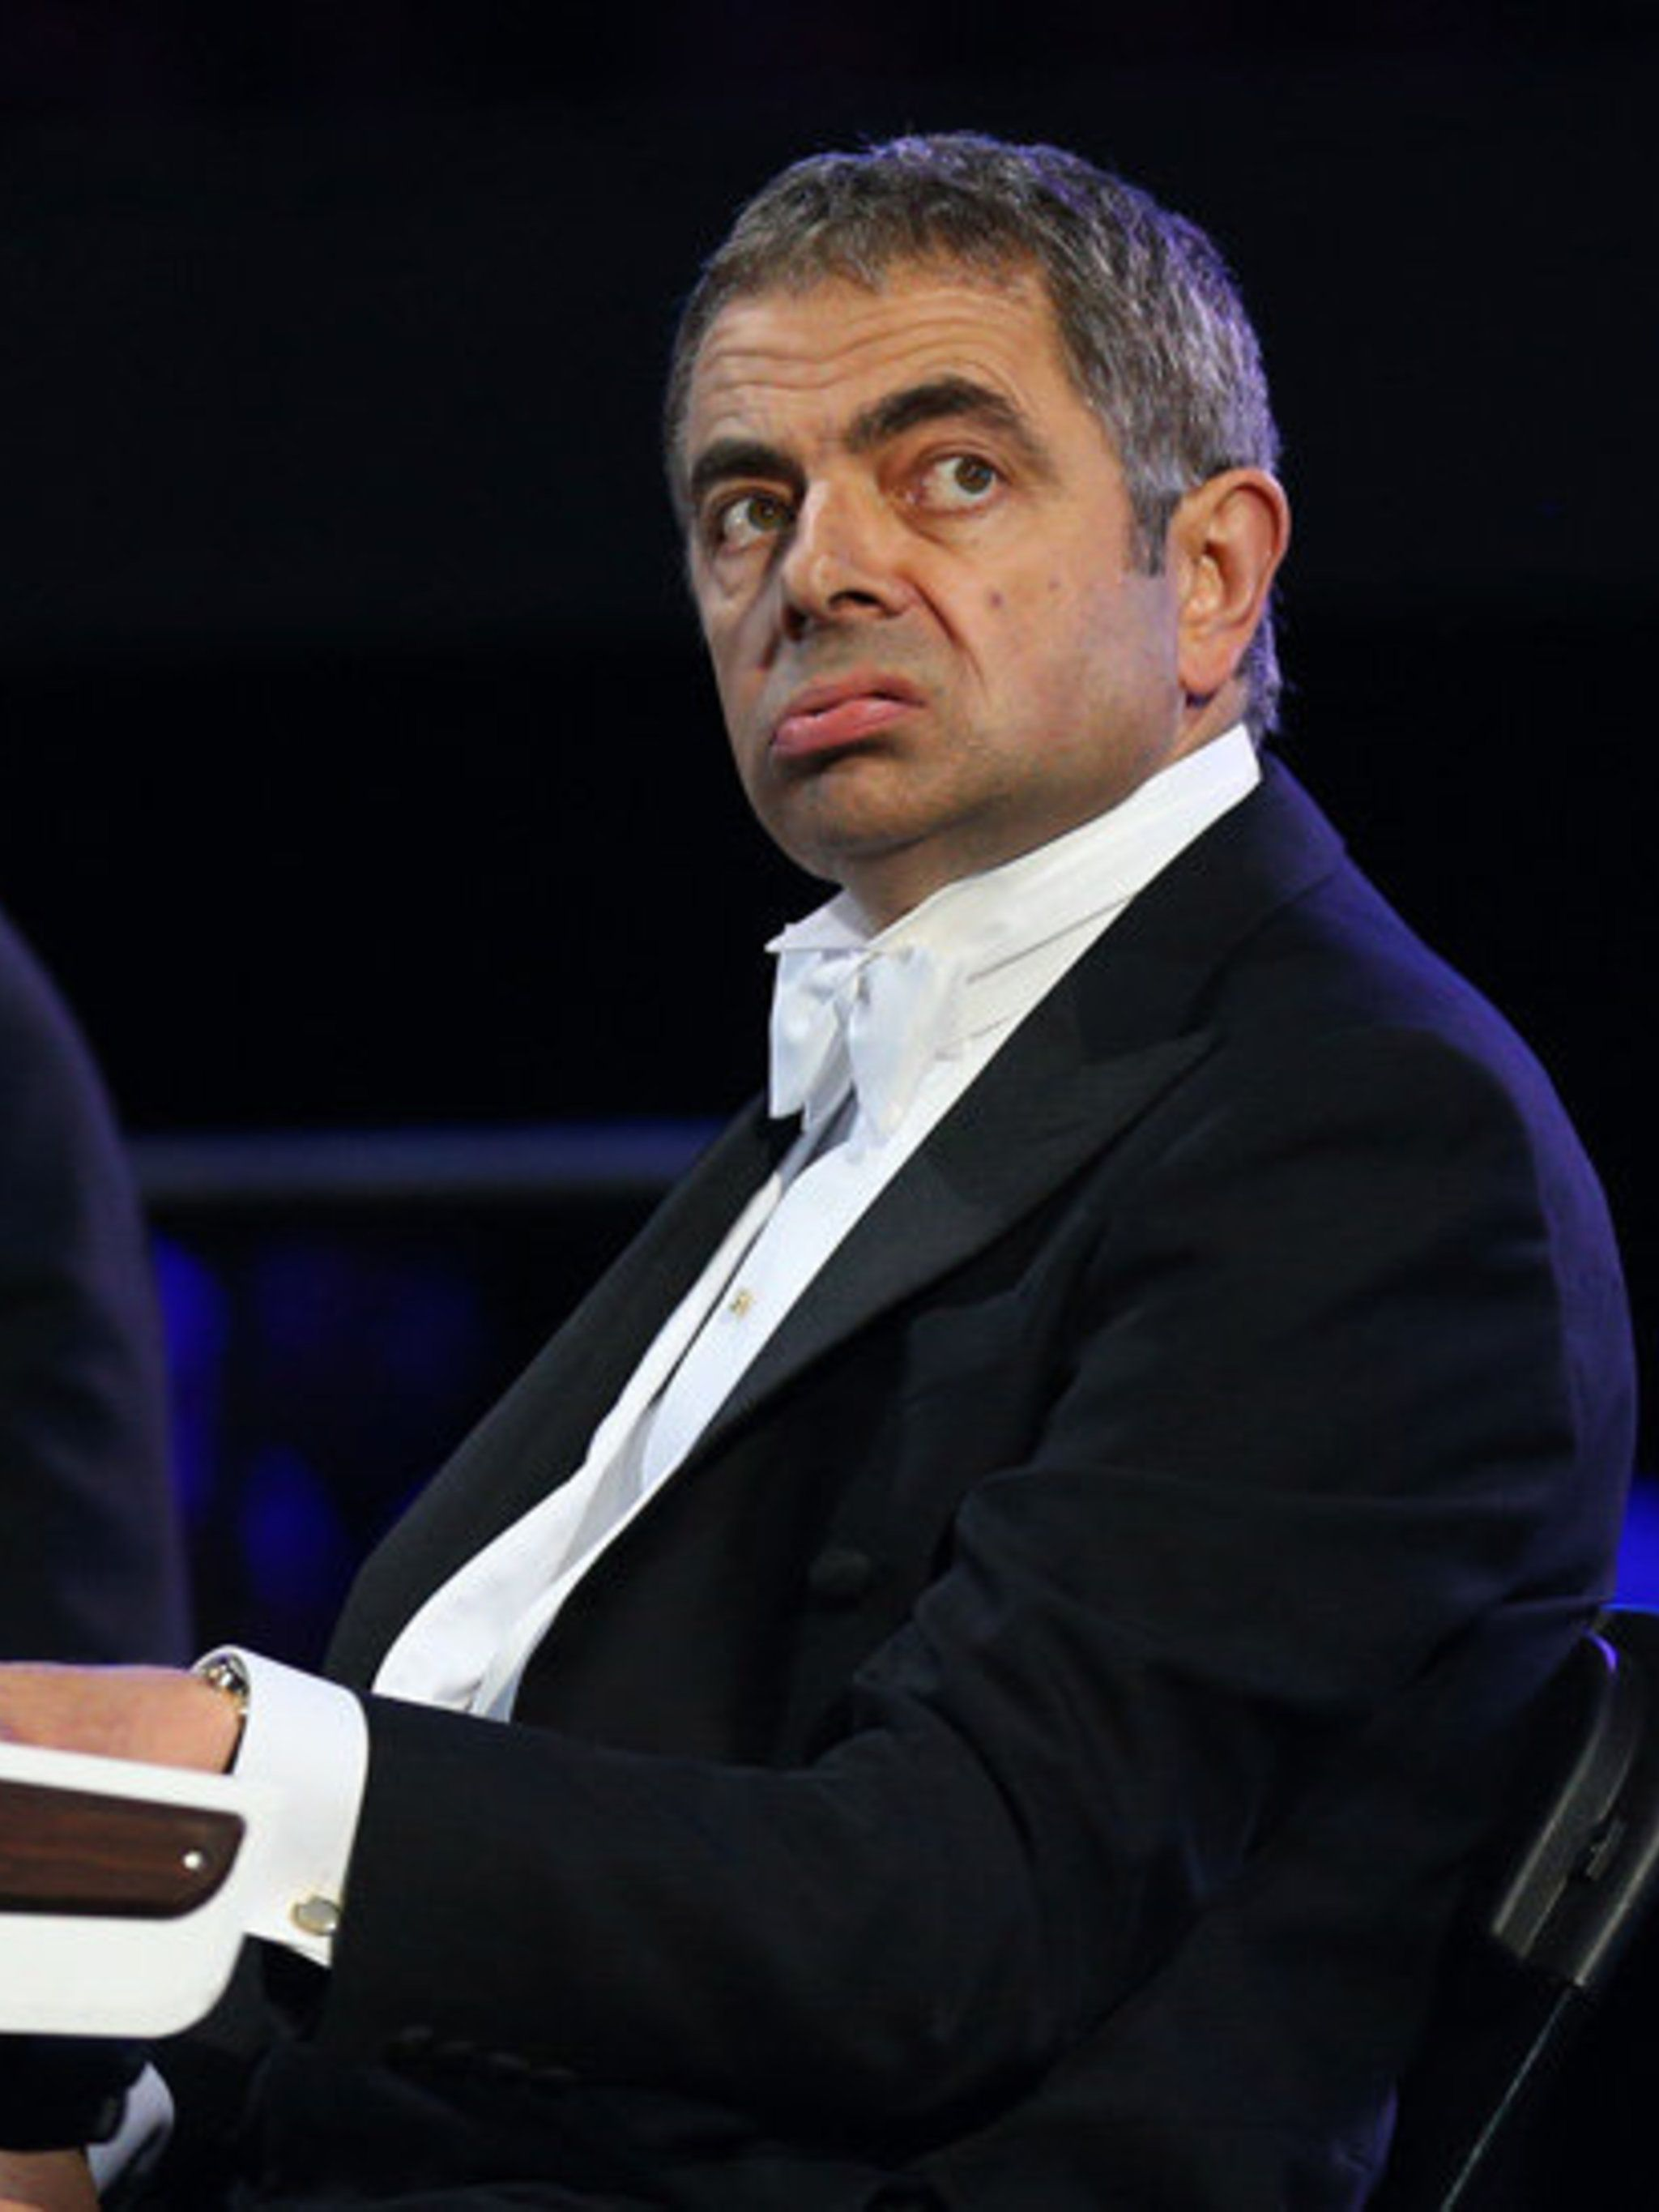 <p>Mr Bean at the Olympics opening ceremony</p>